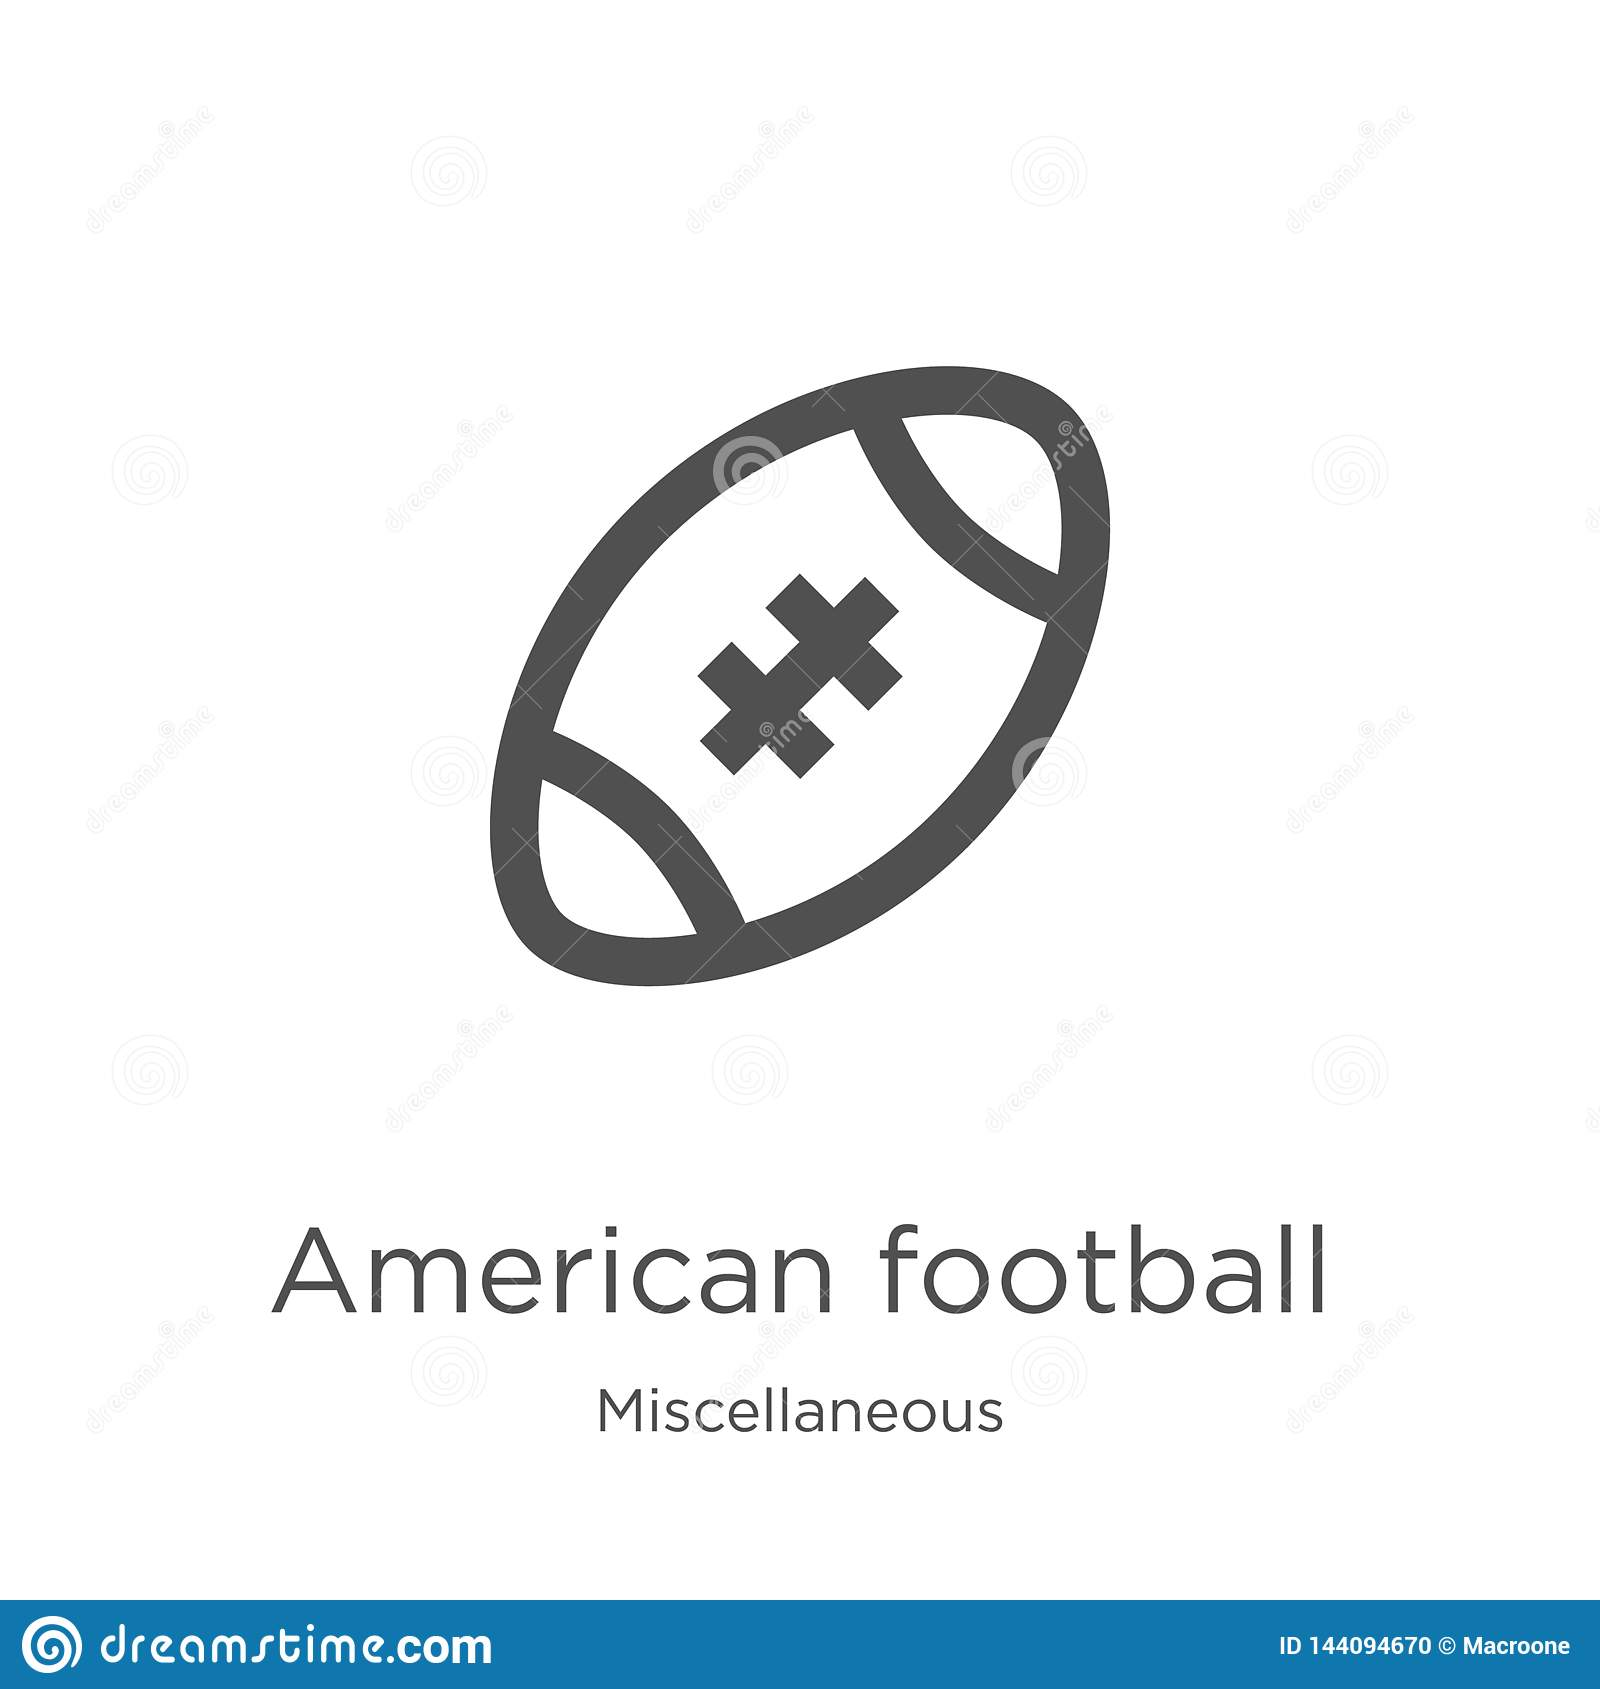 Choose from 8688 american football player stock illustrations from istock. American Football Icon Vector From Miscellaneous Collection Thin Line American Football Outline Icon Vector Illustration Outline Stock Vector Illustration Of Computer Whistle 144094670